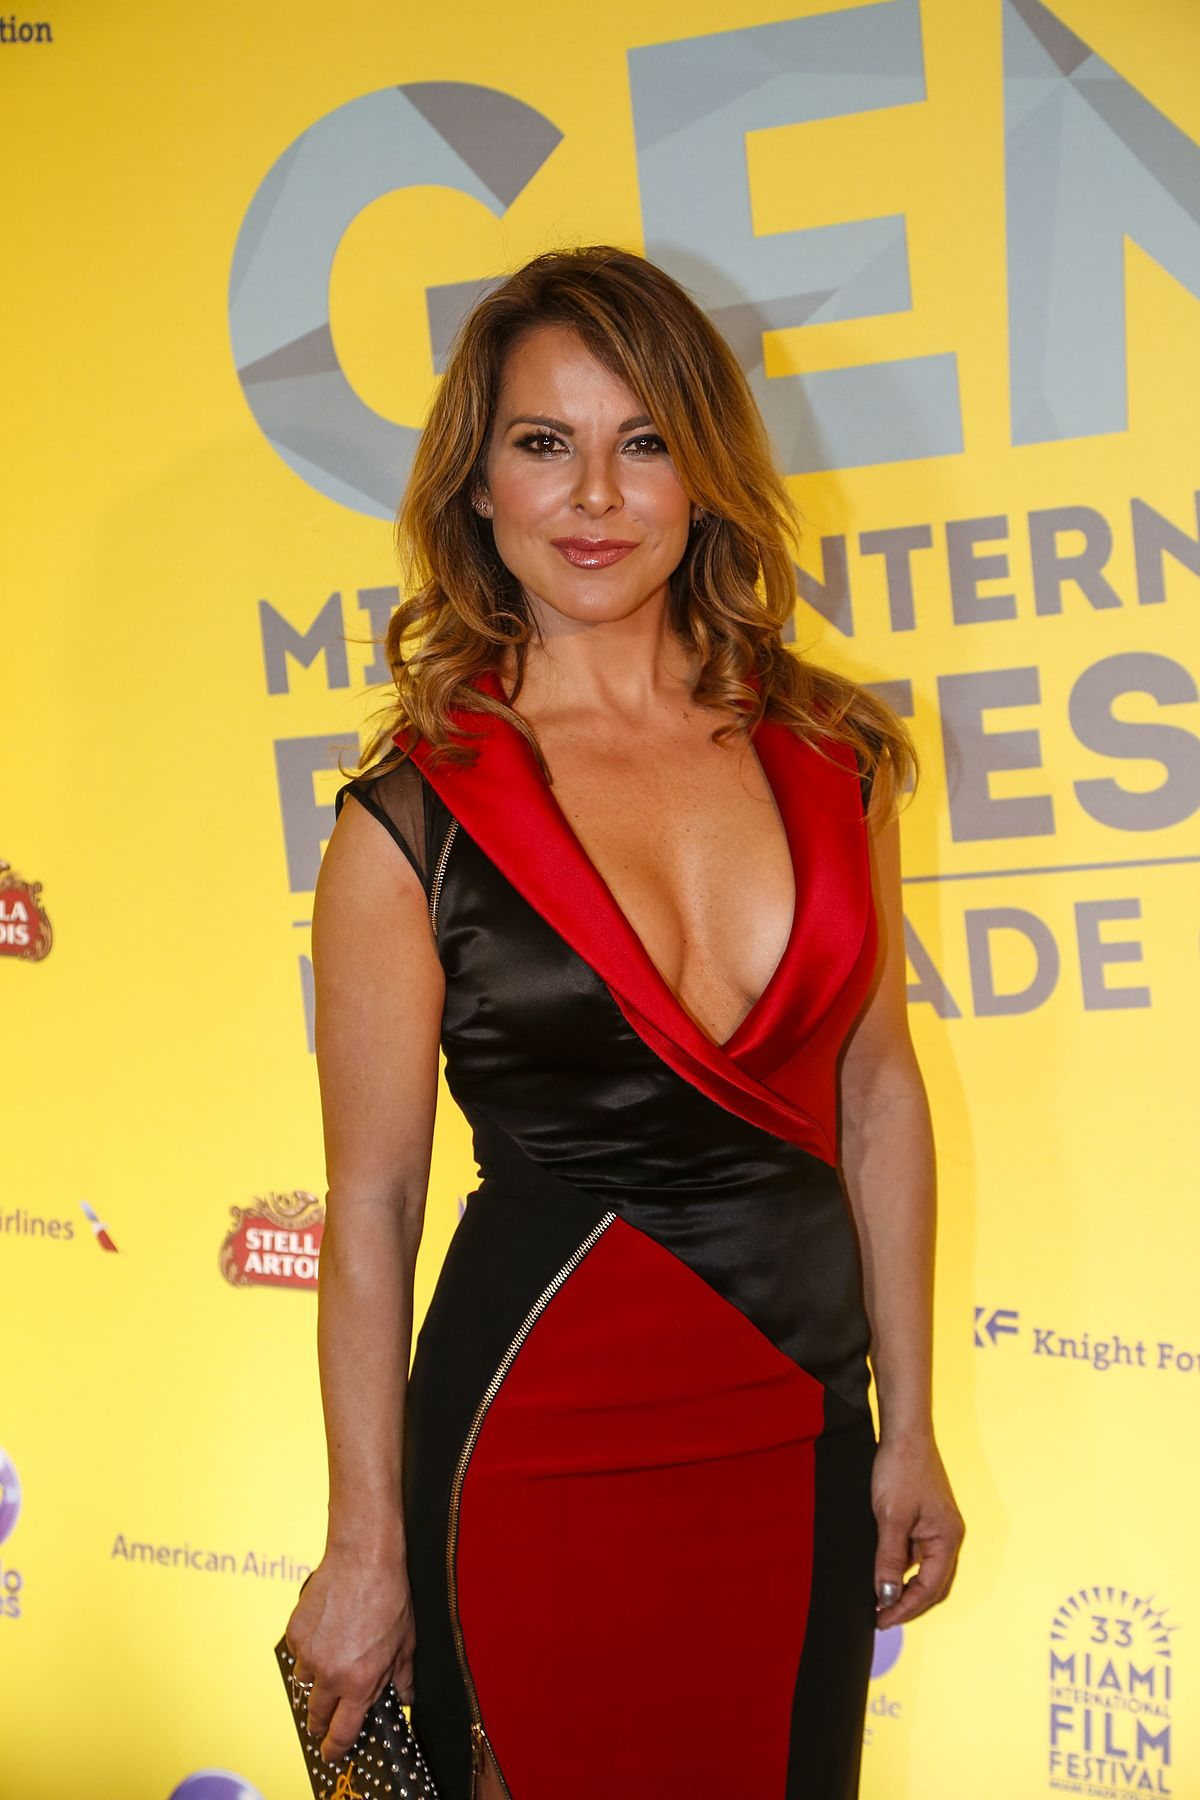 Kate Del Castillo  Wikipedia